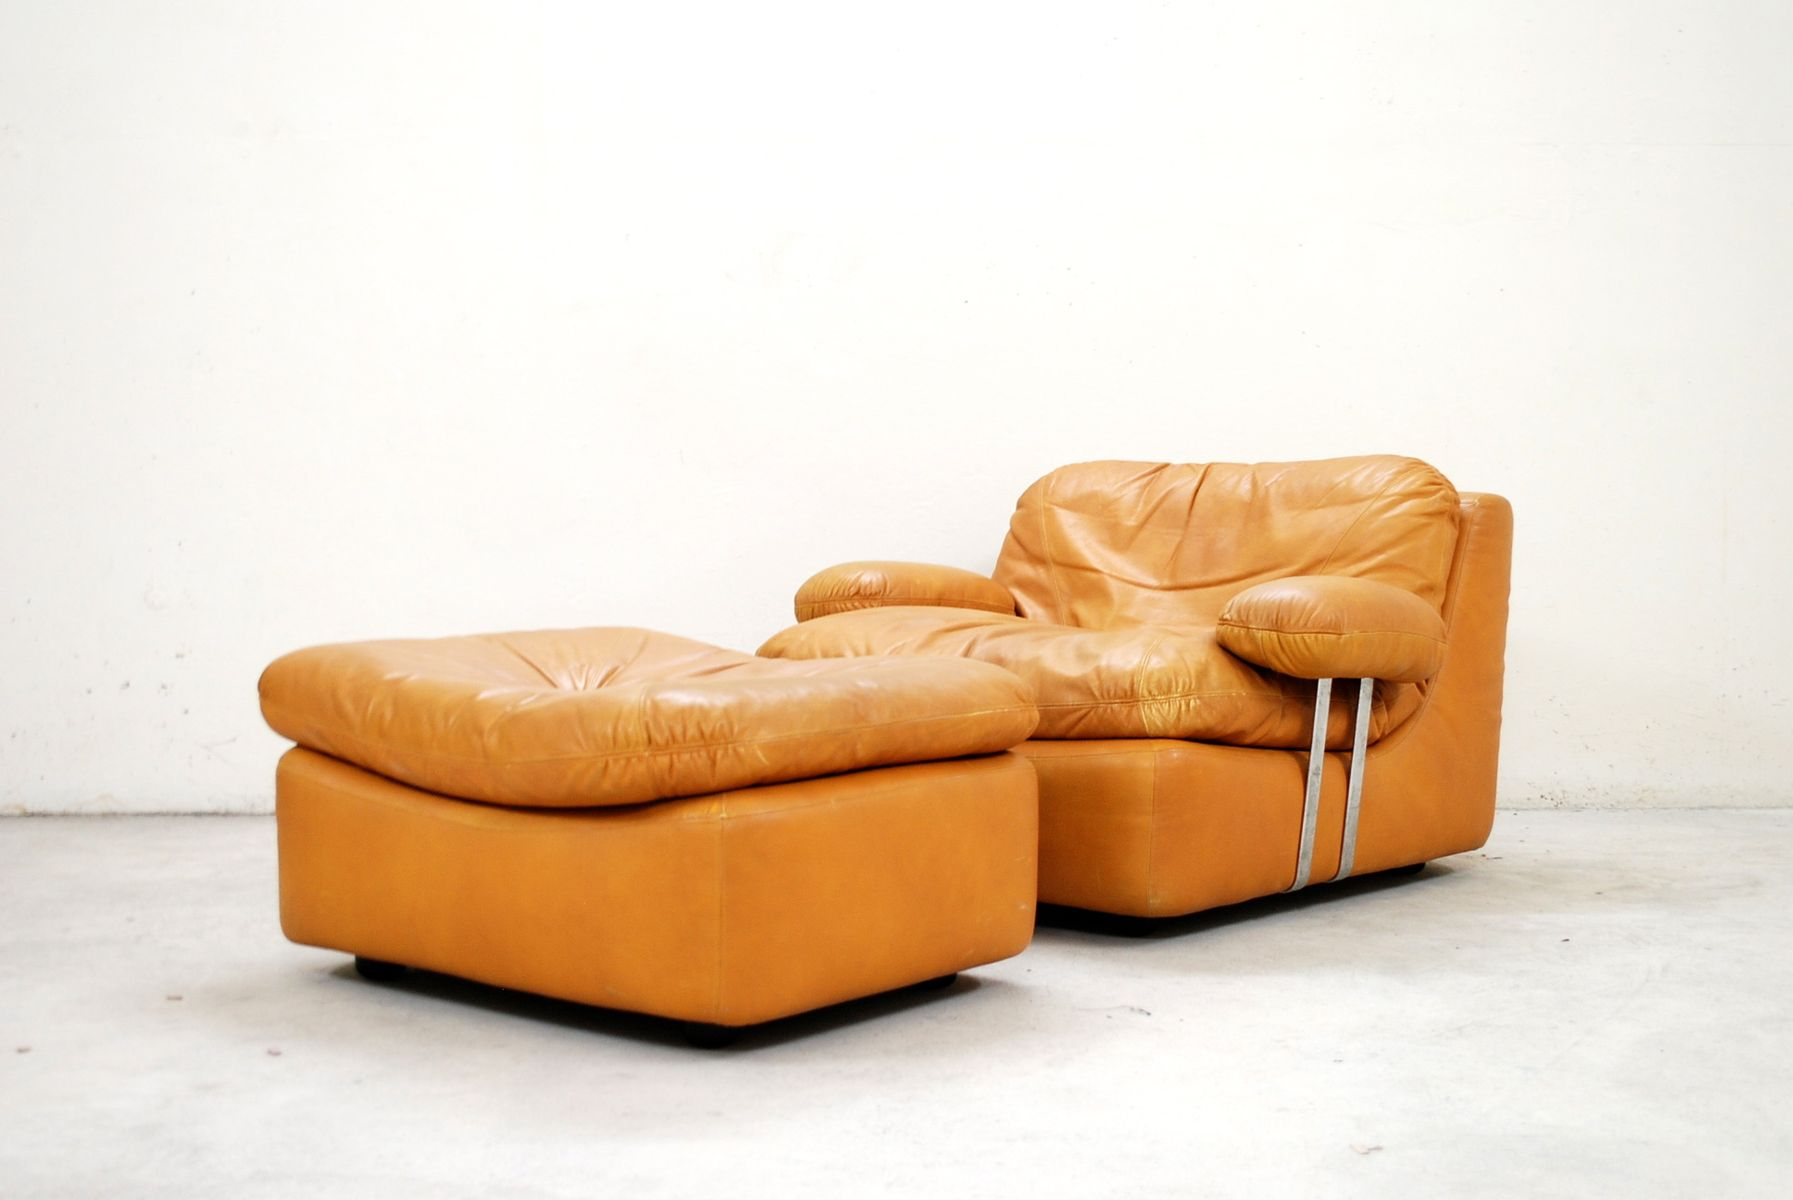 Vintage Cognac Lounge Chair and Ottoman from Dreipunkt